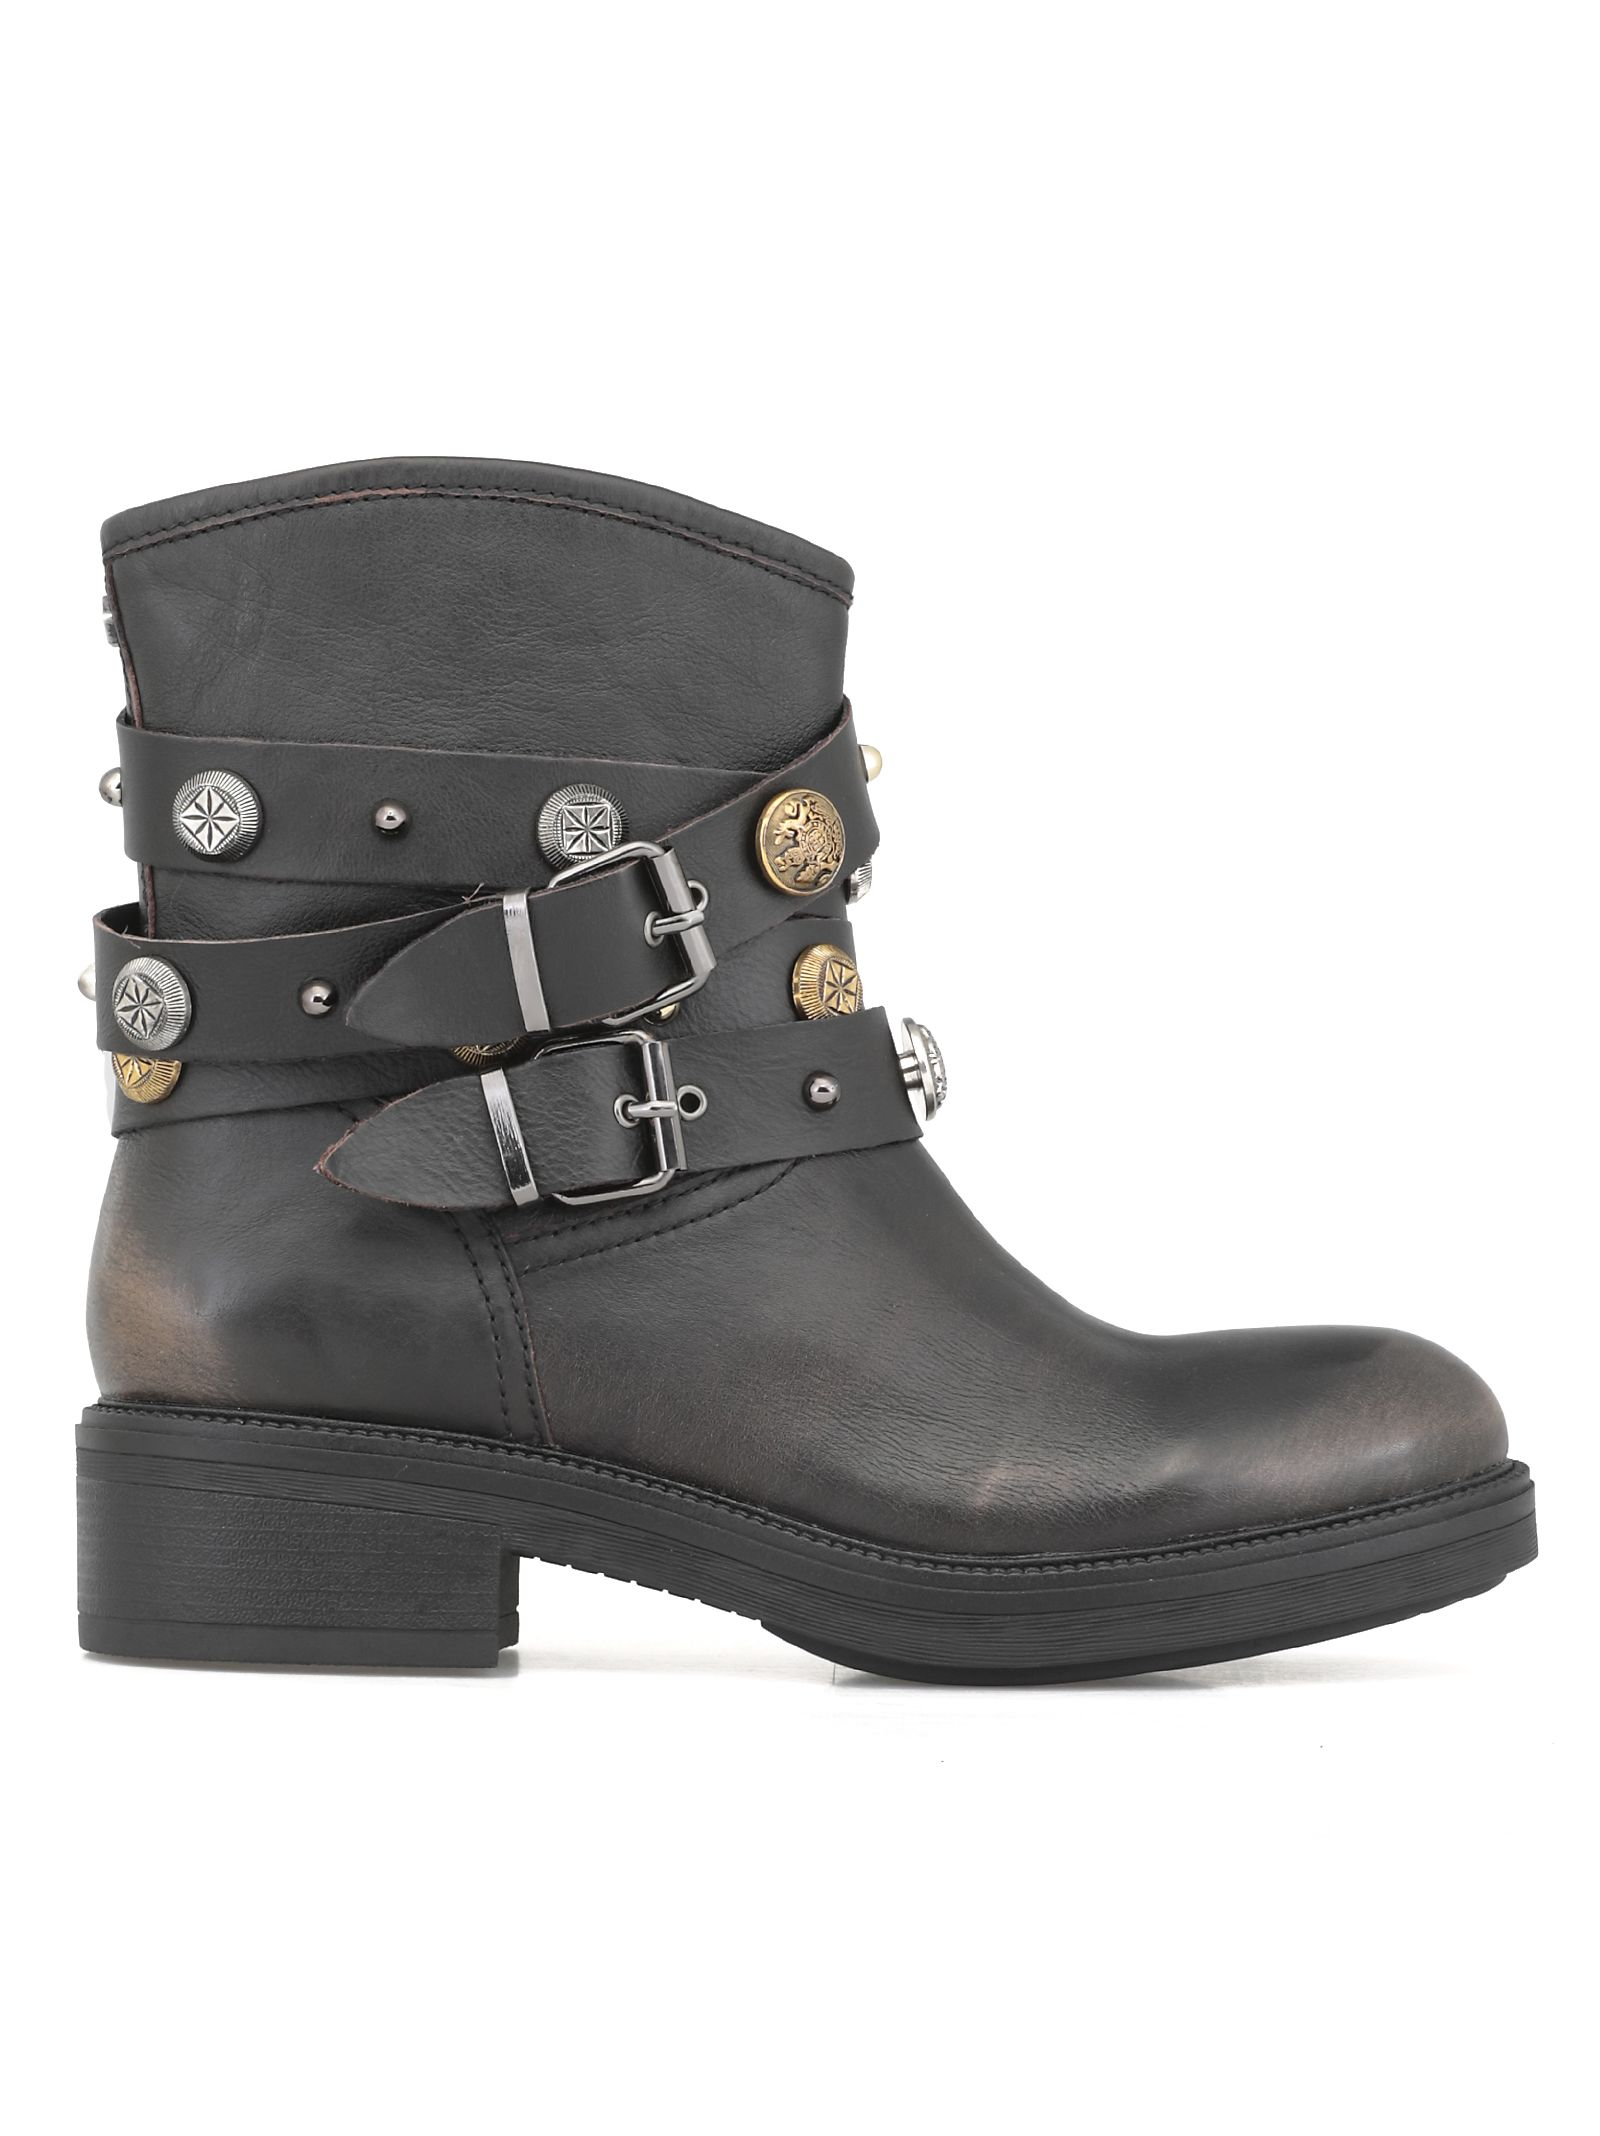 CULT Who Mid 2510 Boot in Black